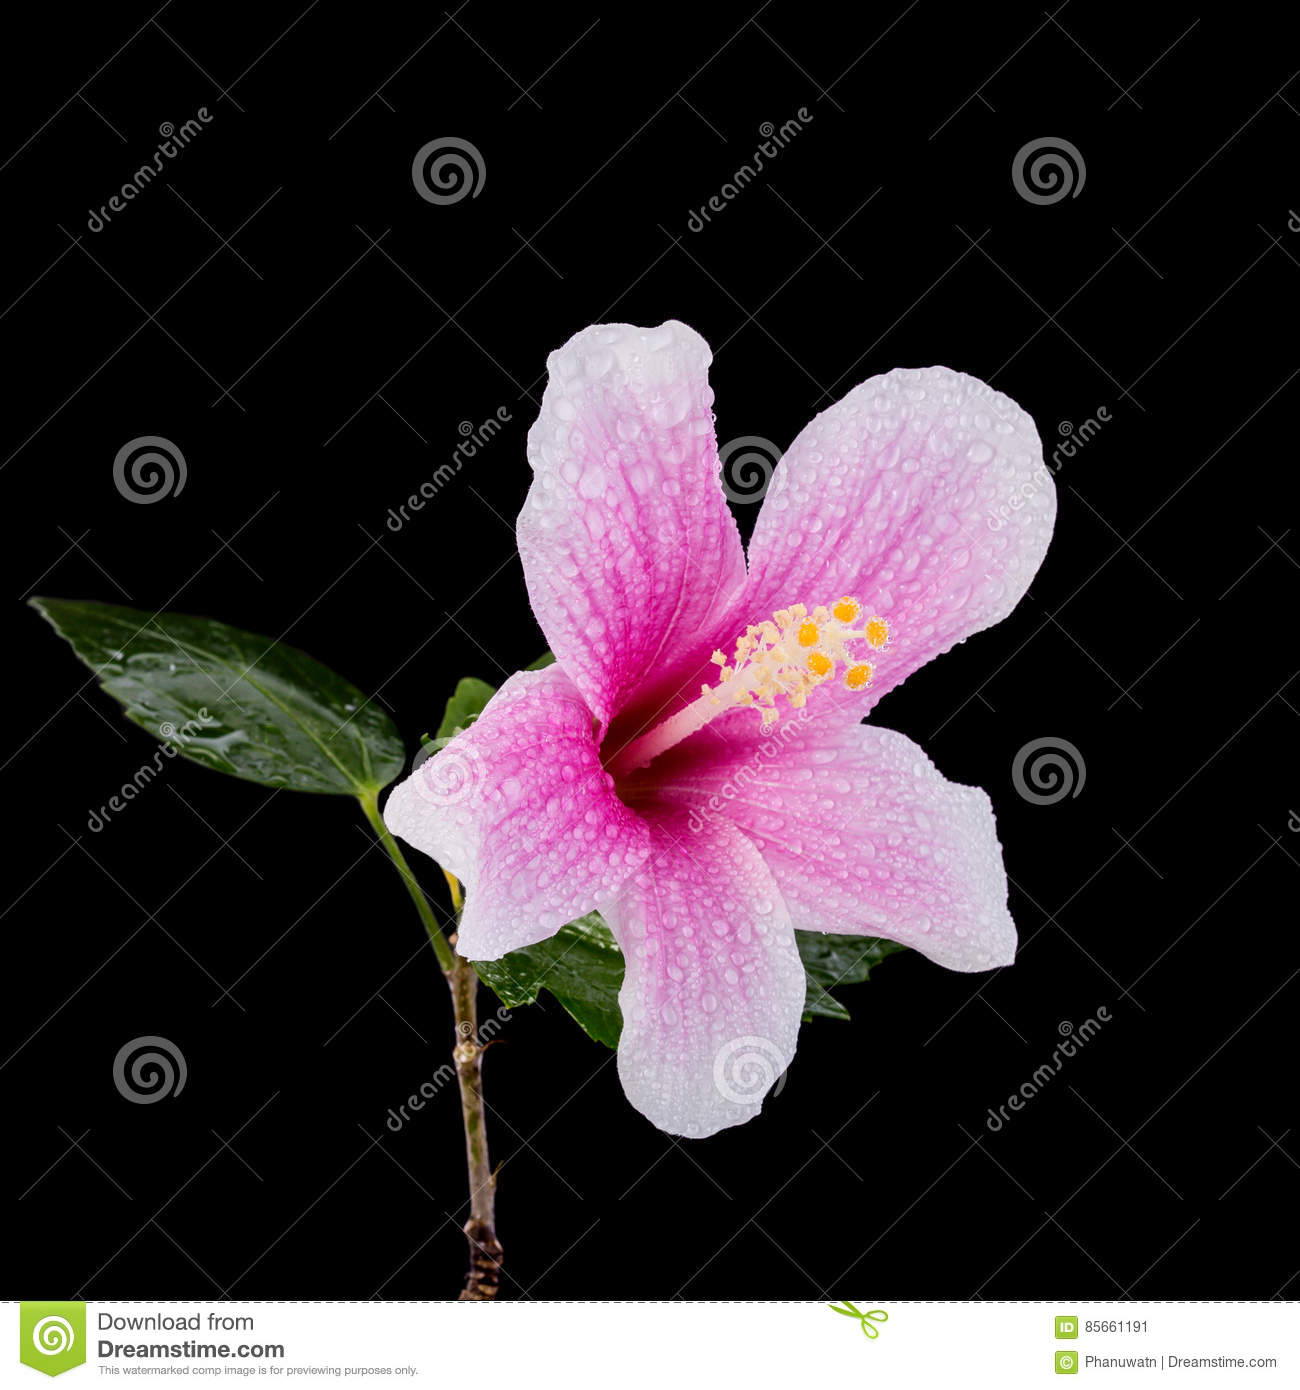 Macro pink hibiscus flower studio shot isolated on black stock download comp izmirmasajfo